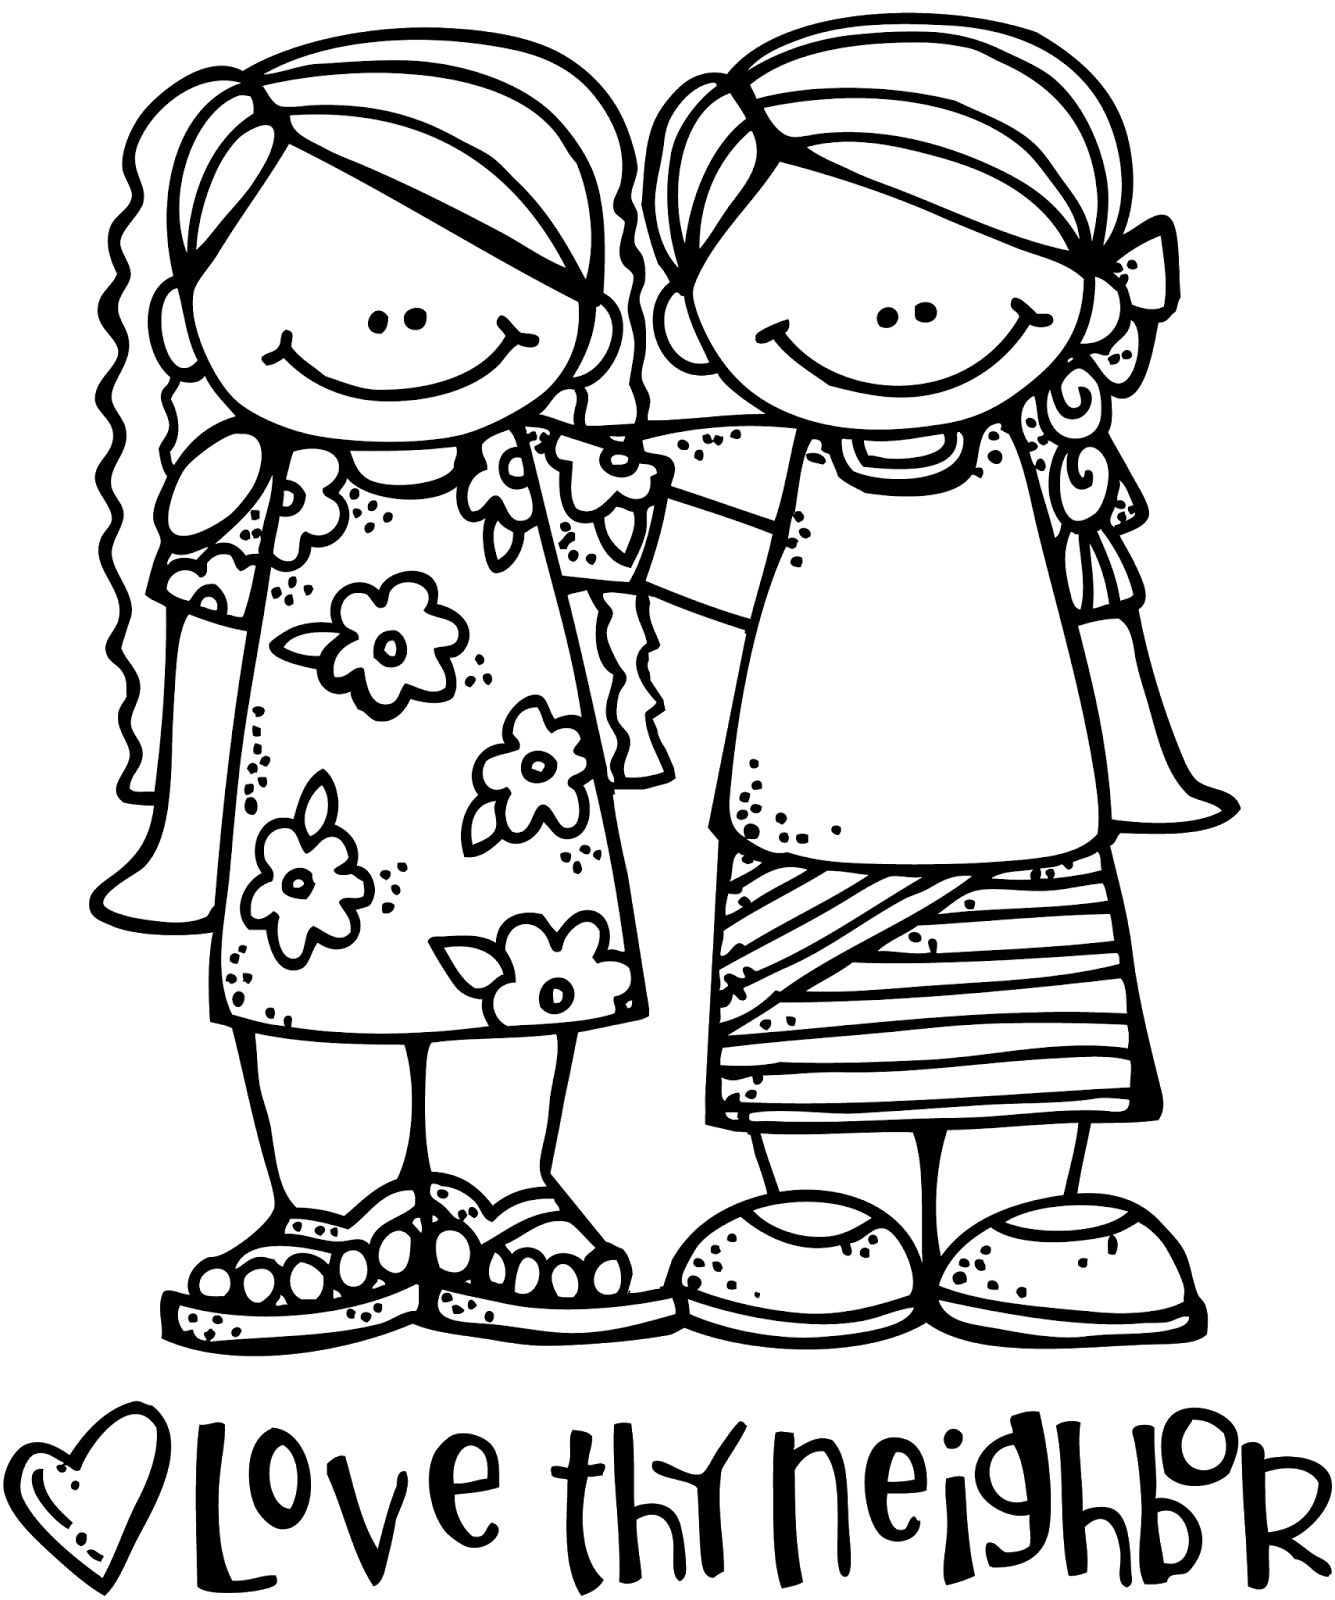 Kids Sharing Clipart Black And White Way fun Clipart...